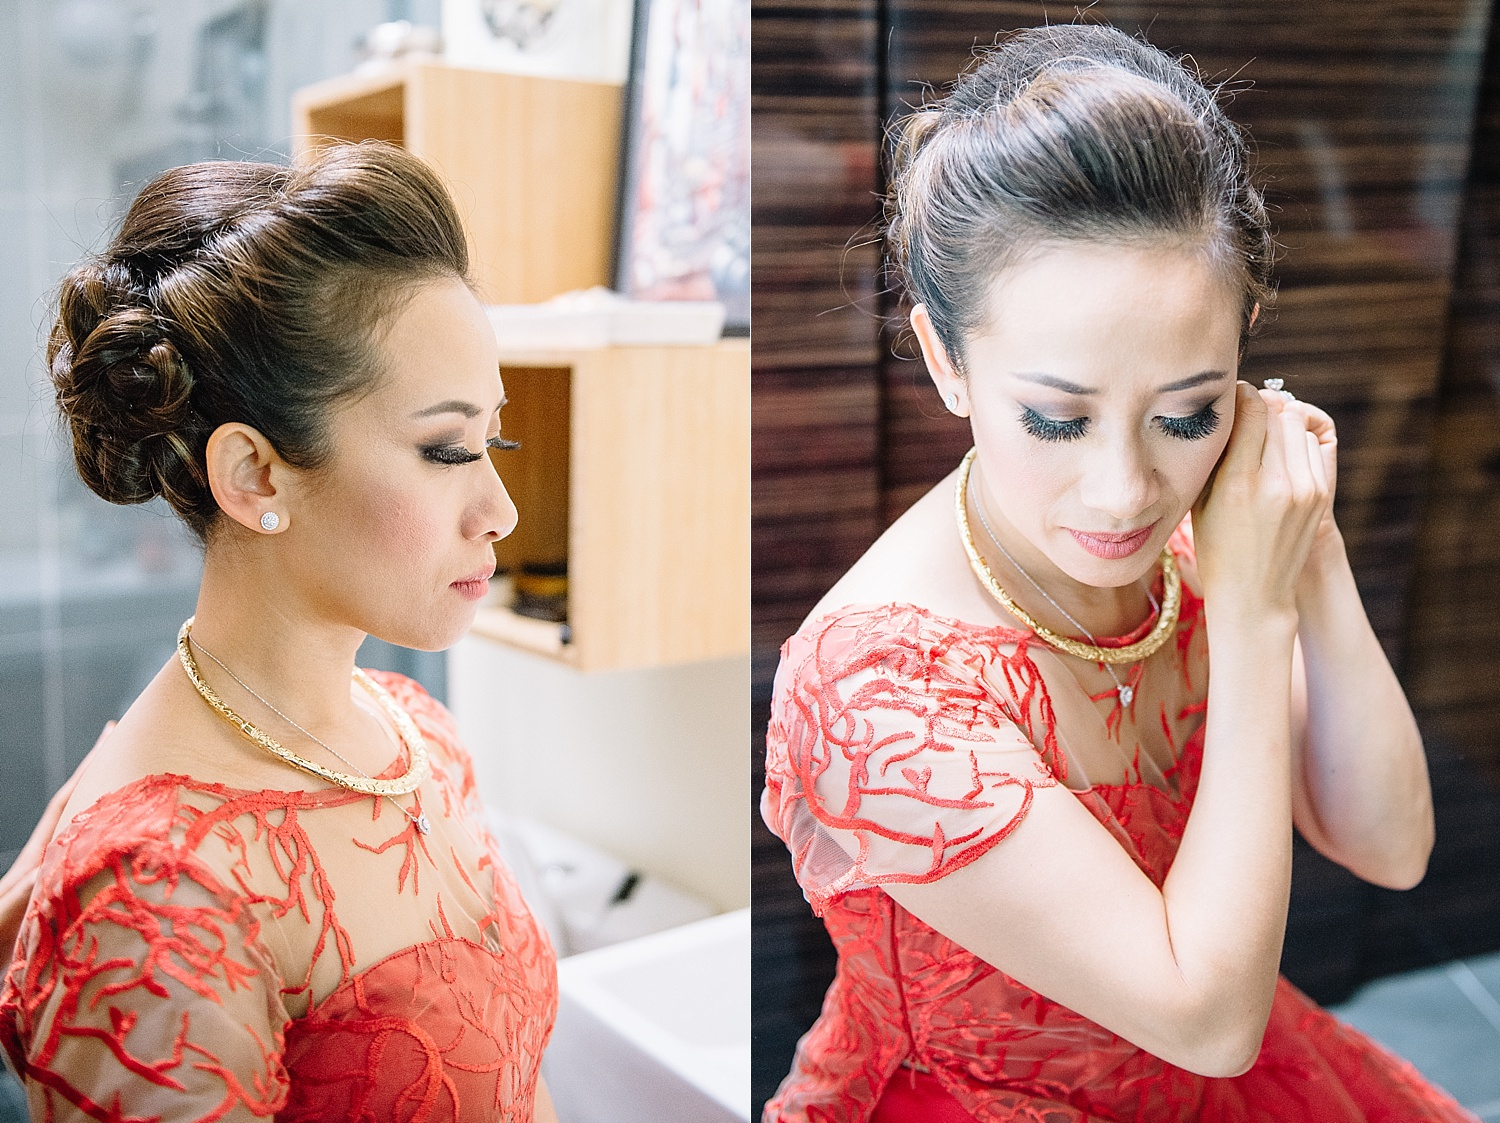 jennifer-jayn-photography-los-altos-wedding-vietnamese-tea-ceremony_0012.jpg